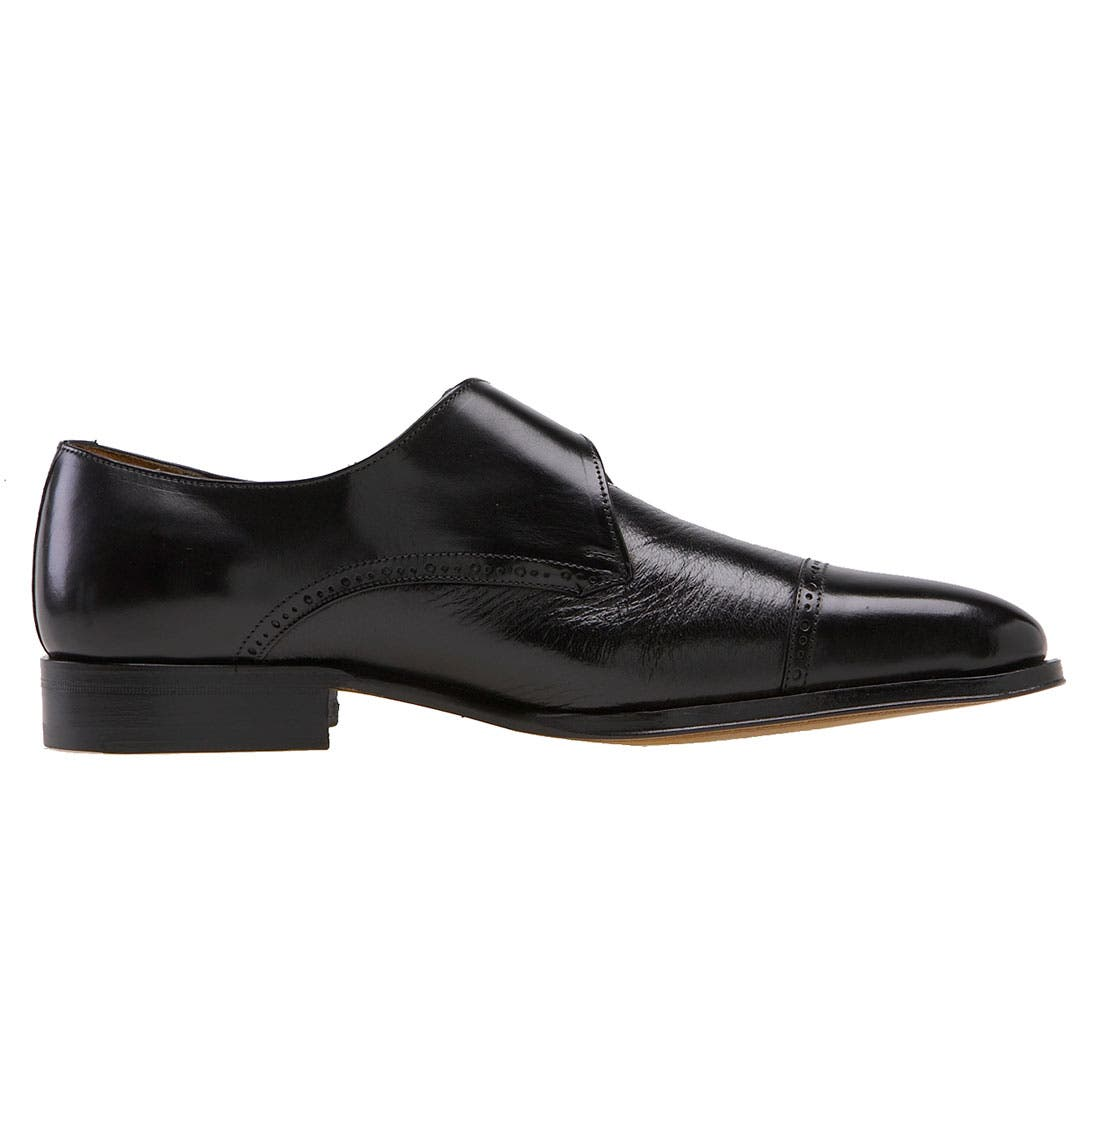 Alternate Image 2  - Mezlan 'Mercker II' Monk Strap Loafer